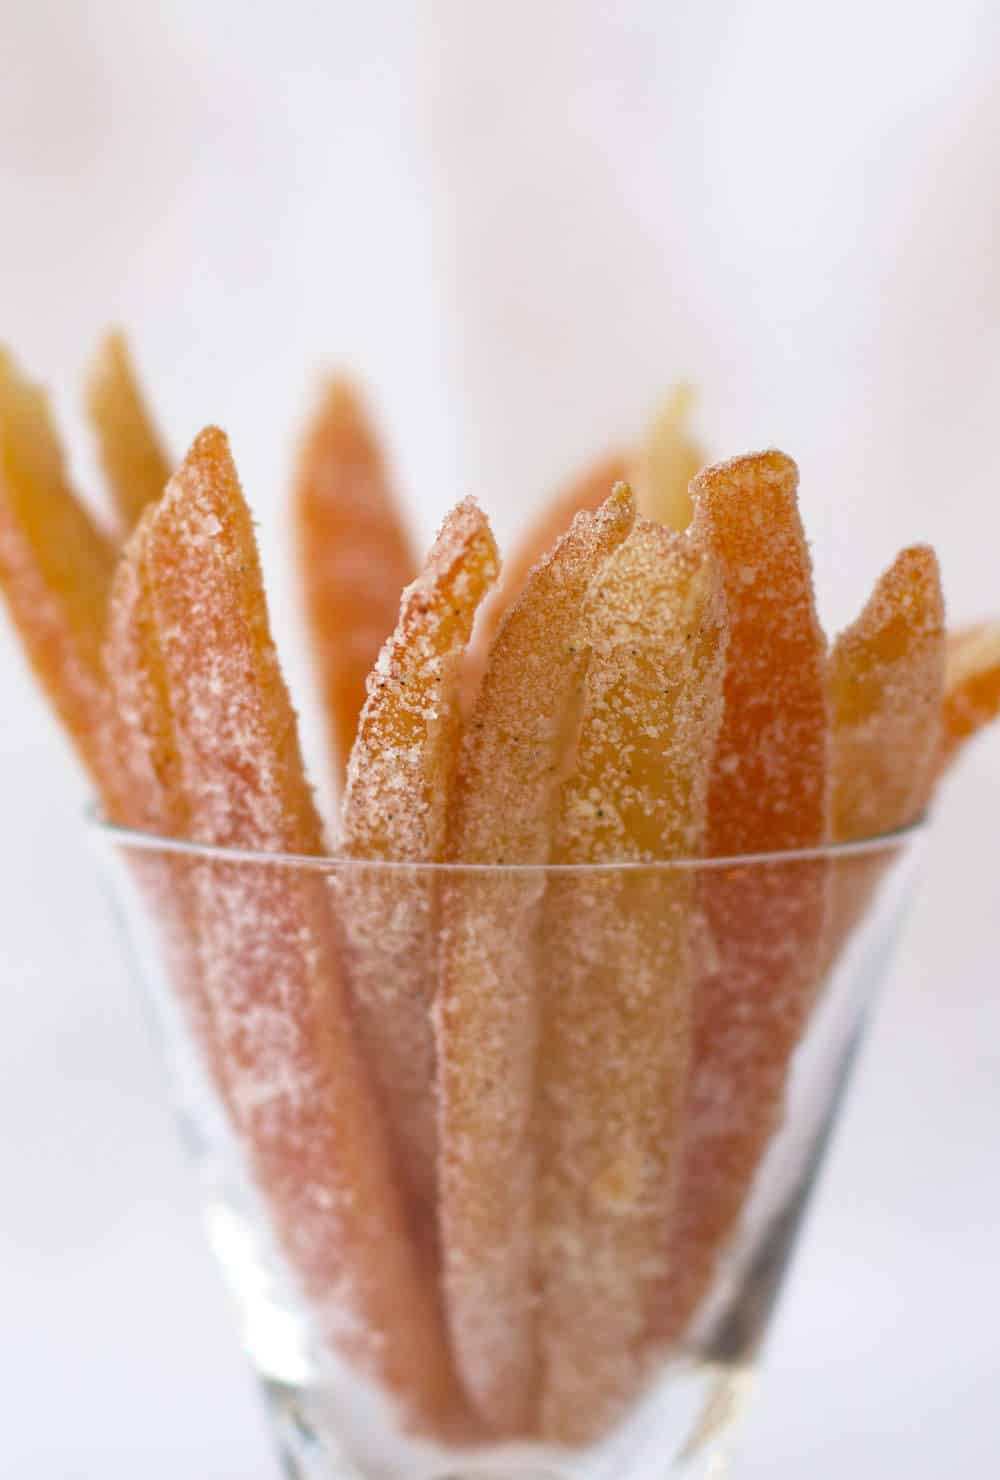 Spicy Candied Orange Peel - an aromatic and addictive version that is the perfect holiday gift. Save some for snacking on too.